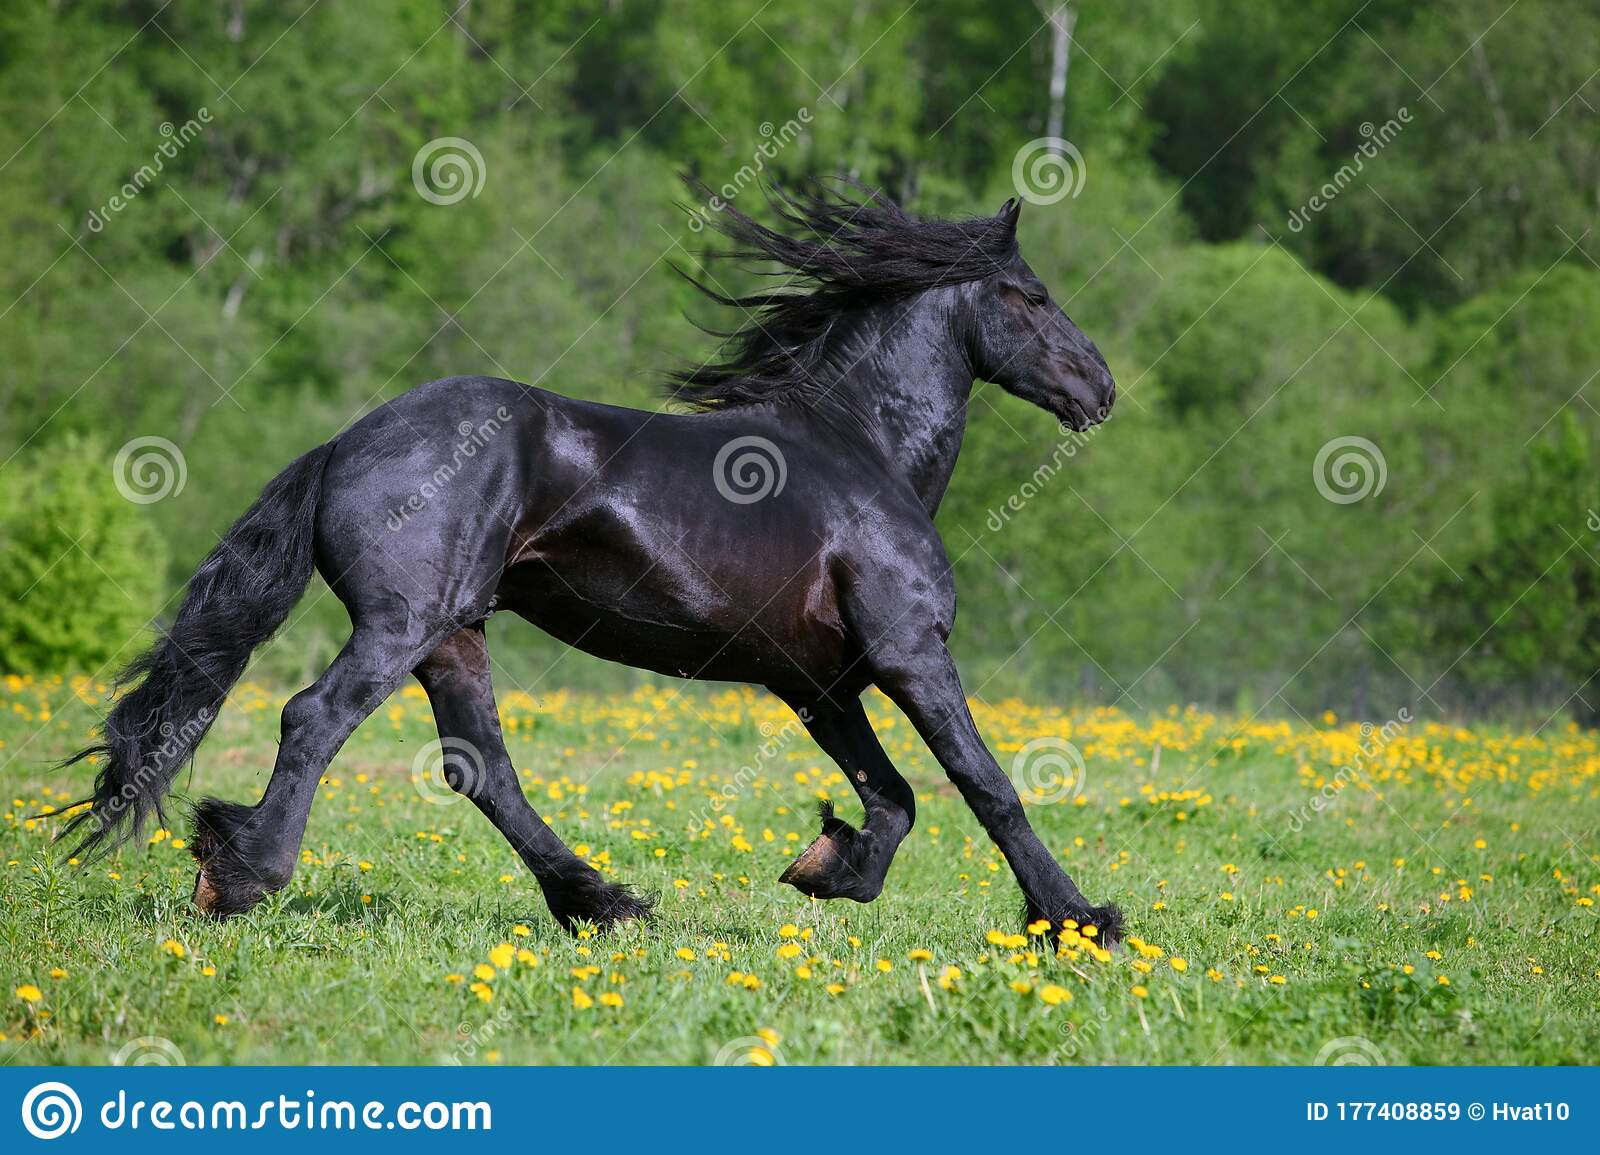 Black Friesian Horse Runs Gallop In Freedom Stock Image Image Of Action Jump 177408859